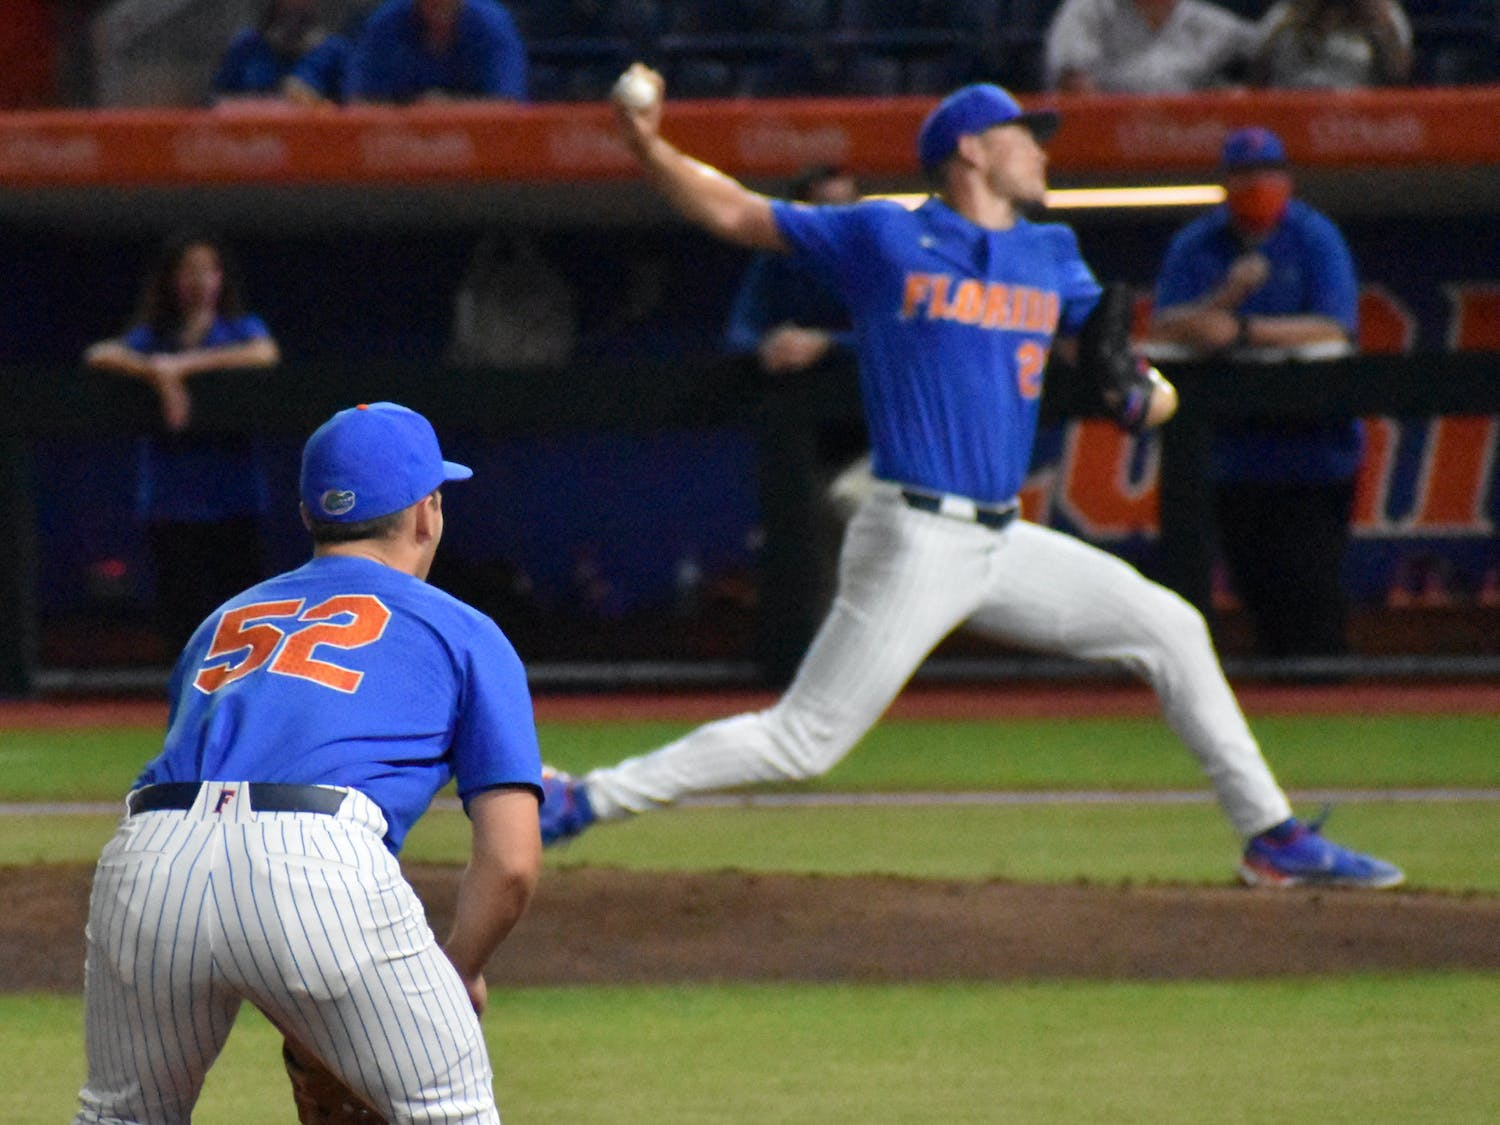 Pitching struggles crafted the narrative for the entire weekend, and Sunday wasn't different. Photo from UF-Jacksonville March 13.